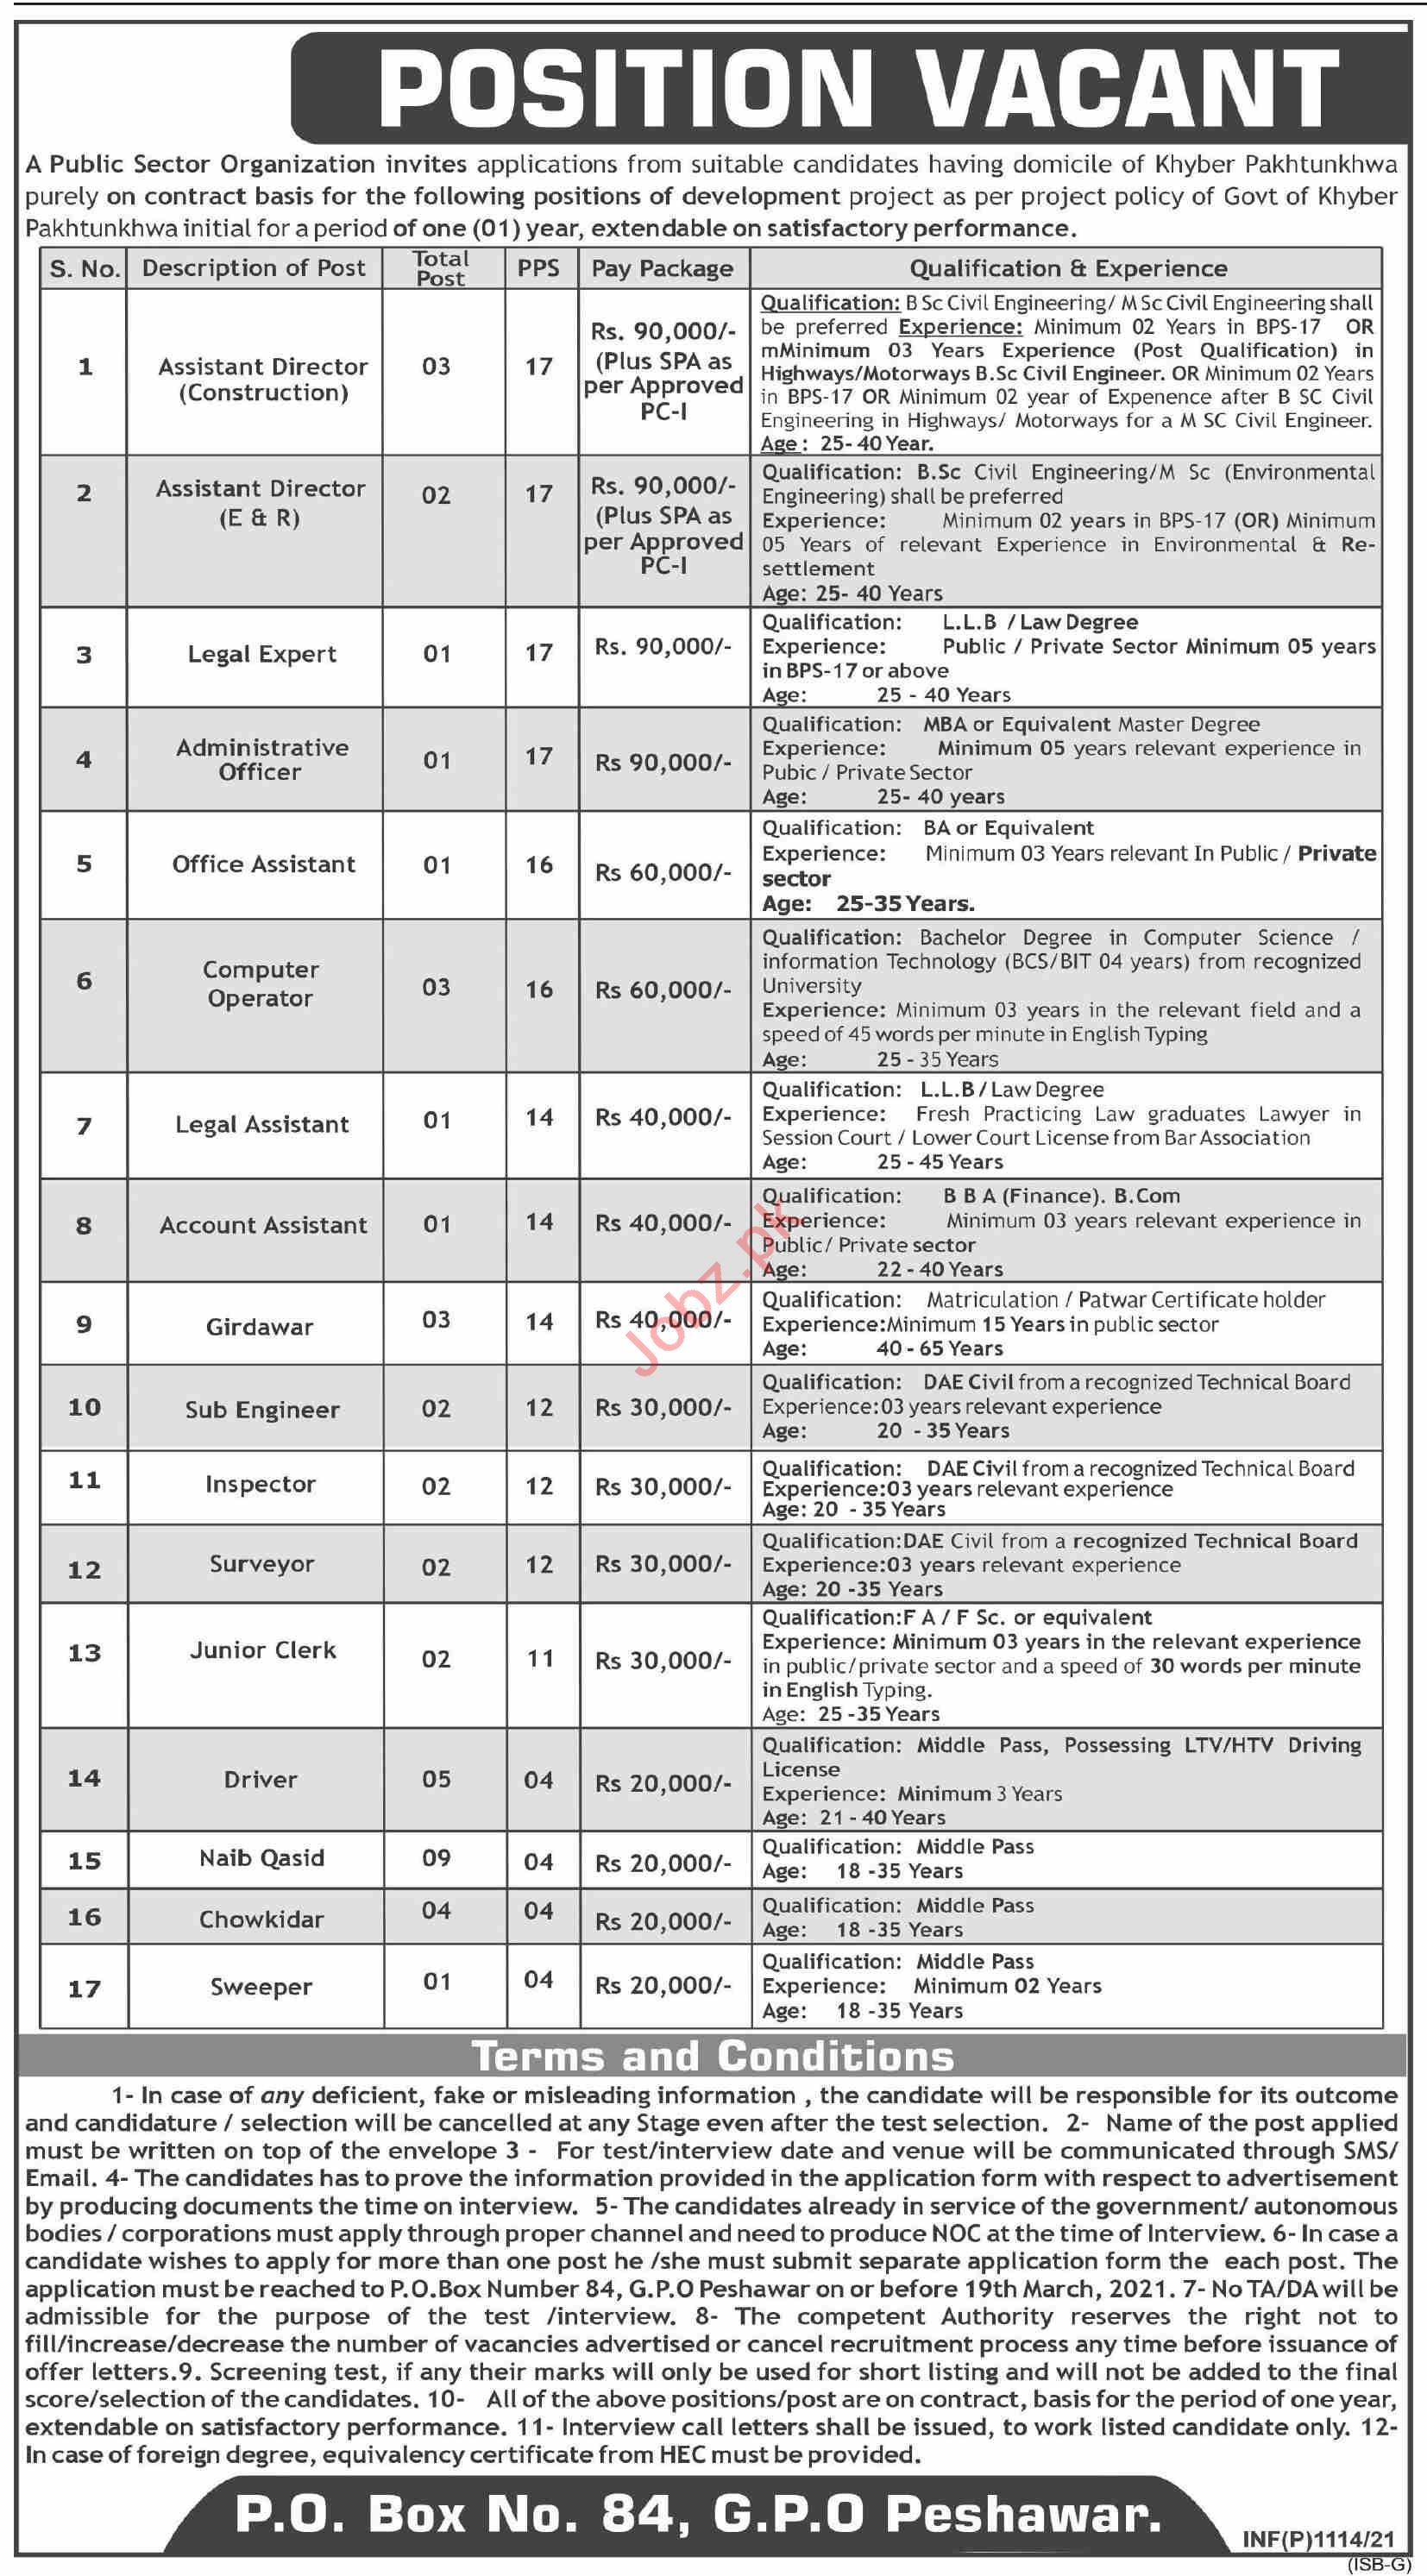 P O Box No 84 GPO Peshawar Jobs 2021 for Assistant Director